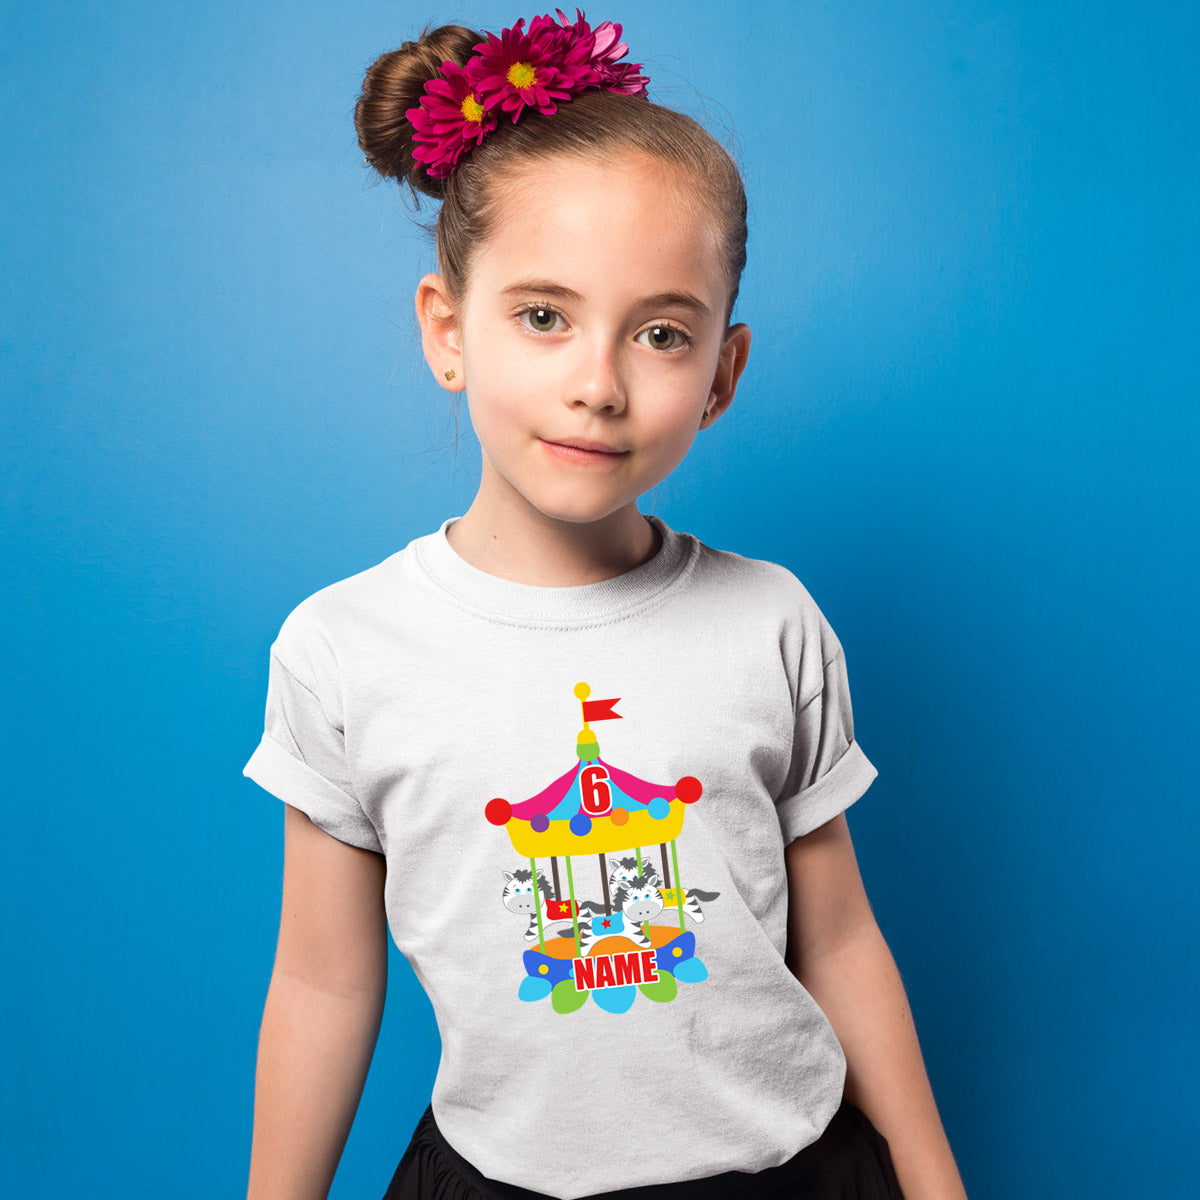 Sprinklecart Custom Name and Age Printed Circus Zibra 6th Birthday Poly-Cotton T Shirt for Kids (White)